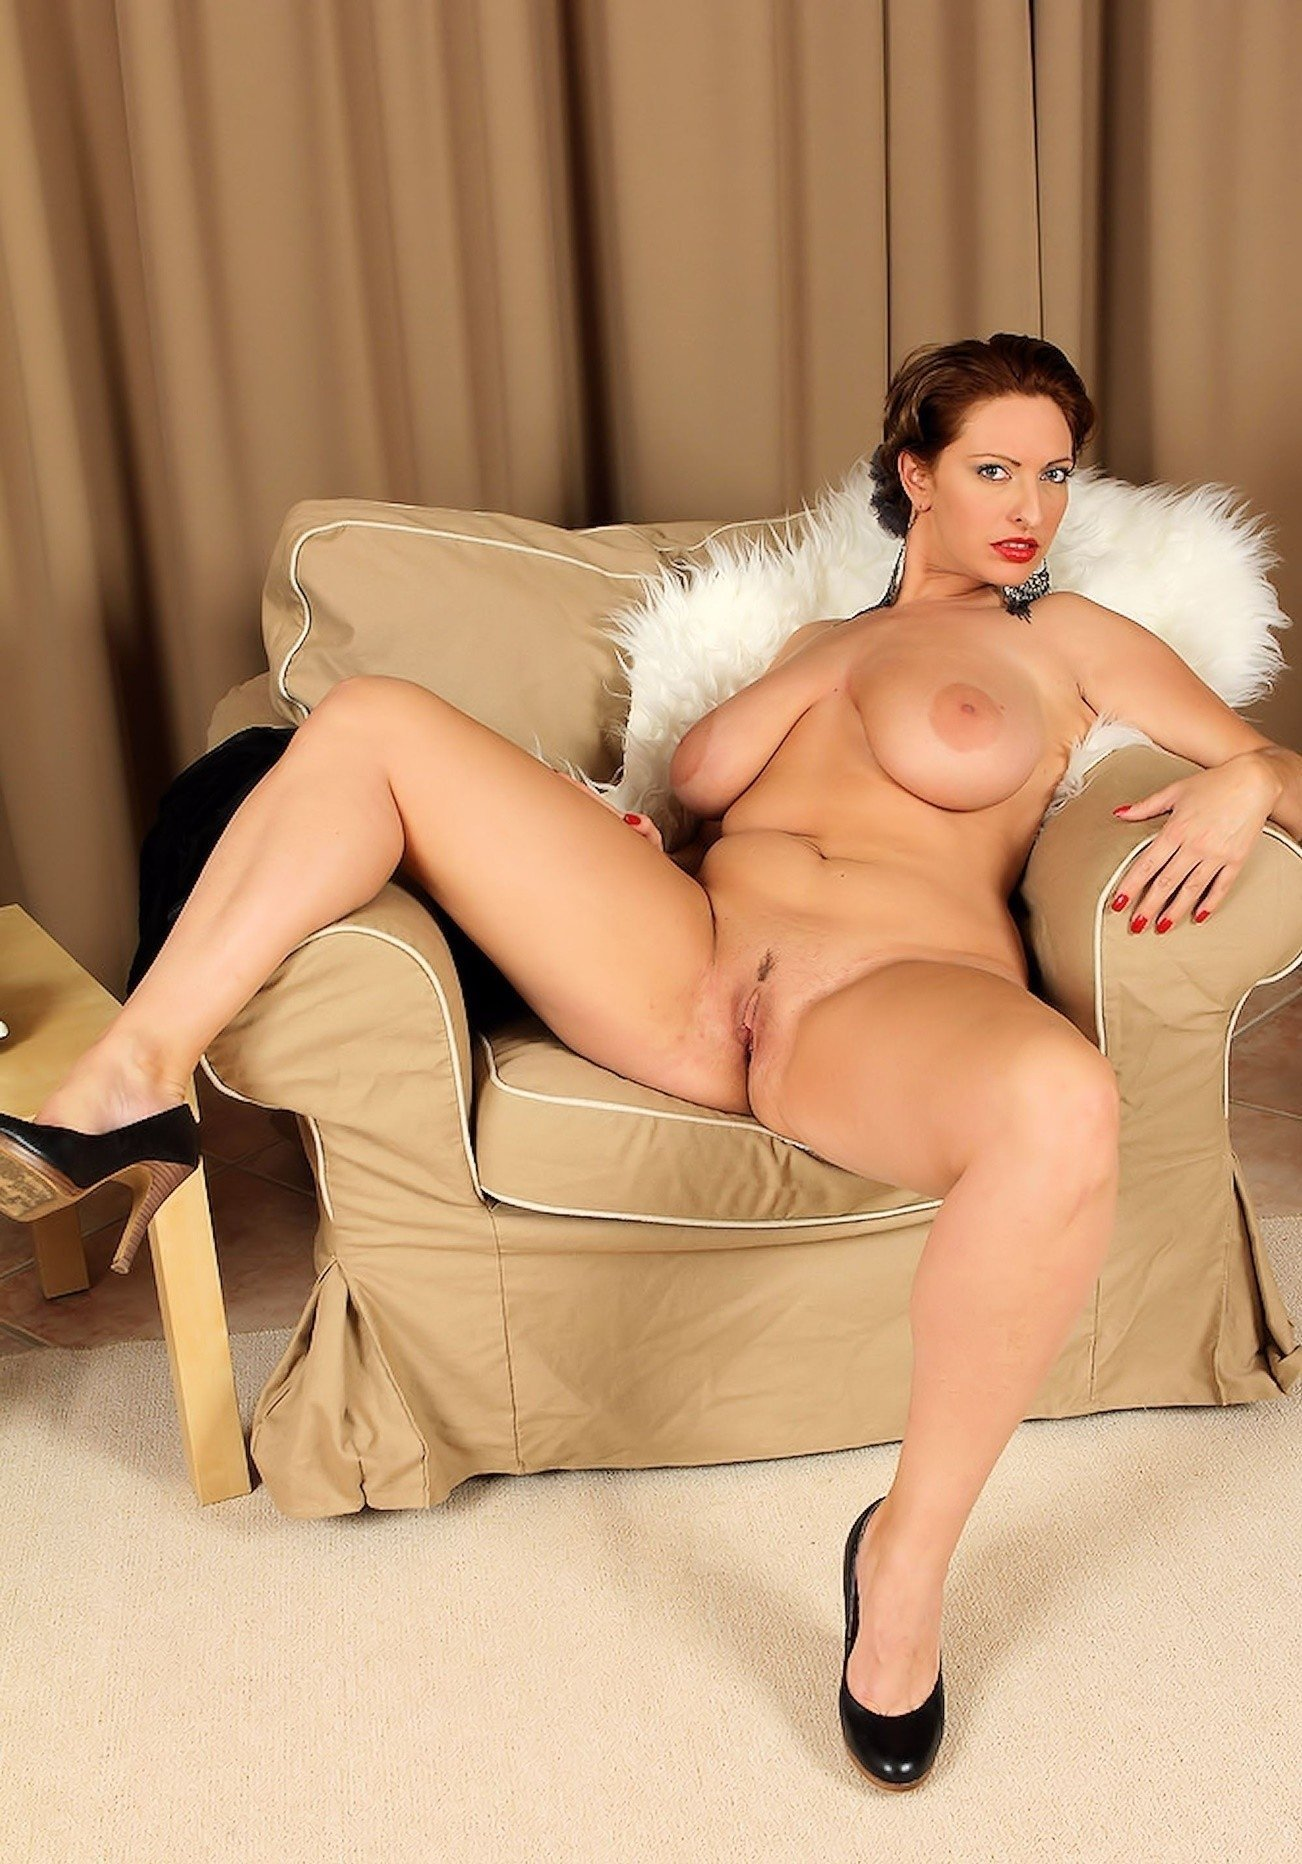 Voluptuous Milf With Big Tits And Shaved Pussy In Hot Gallery